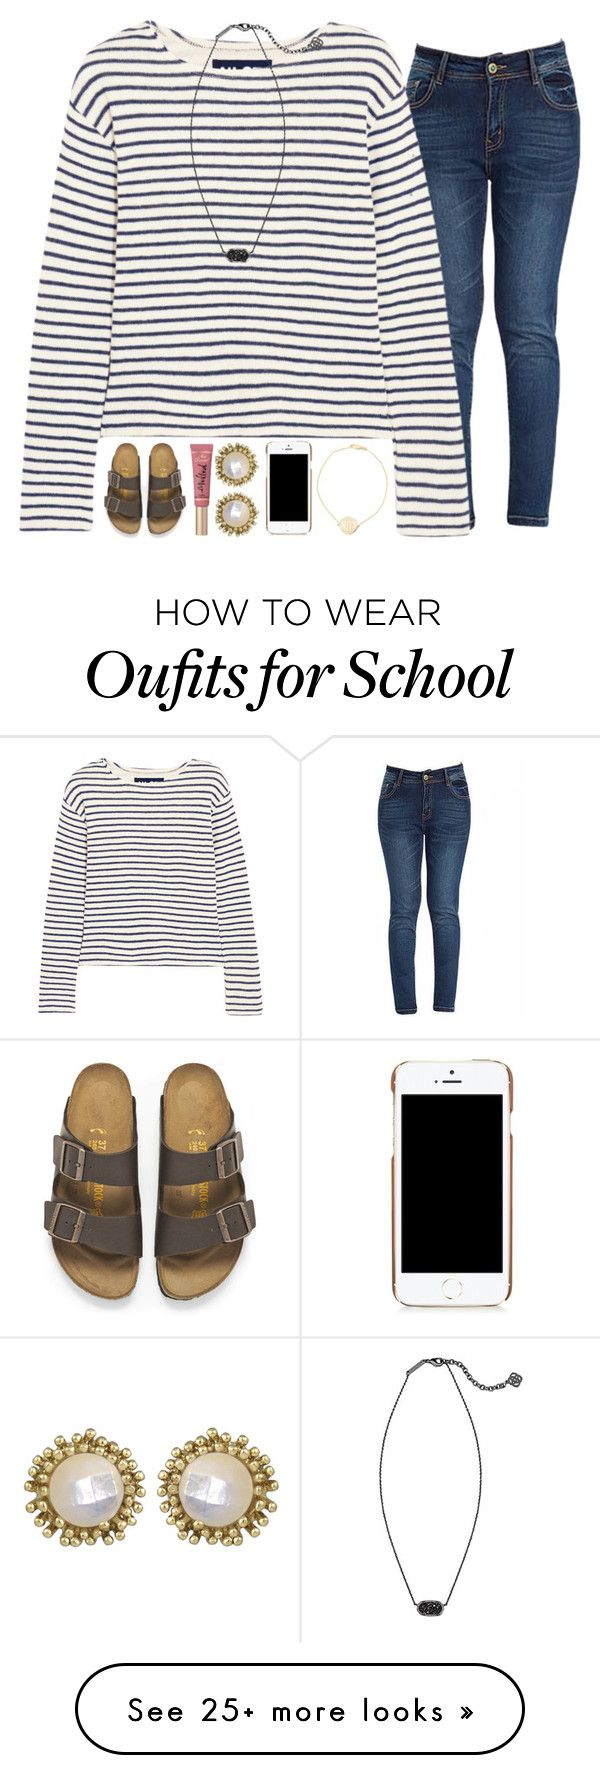 """""""Almost Every Girl in My School Has a Kendra Scott Necklace"""" by evieleet on Polyvore featuring NLST, Kendra Scott, Birkenstock, Too Faced Cosmetics, Moschino and Sarah Chloe"""